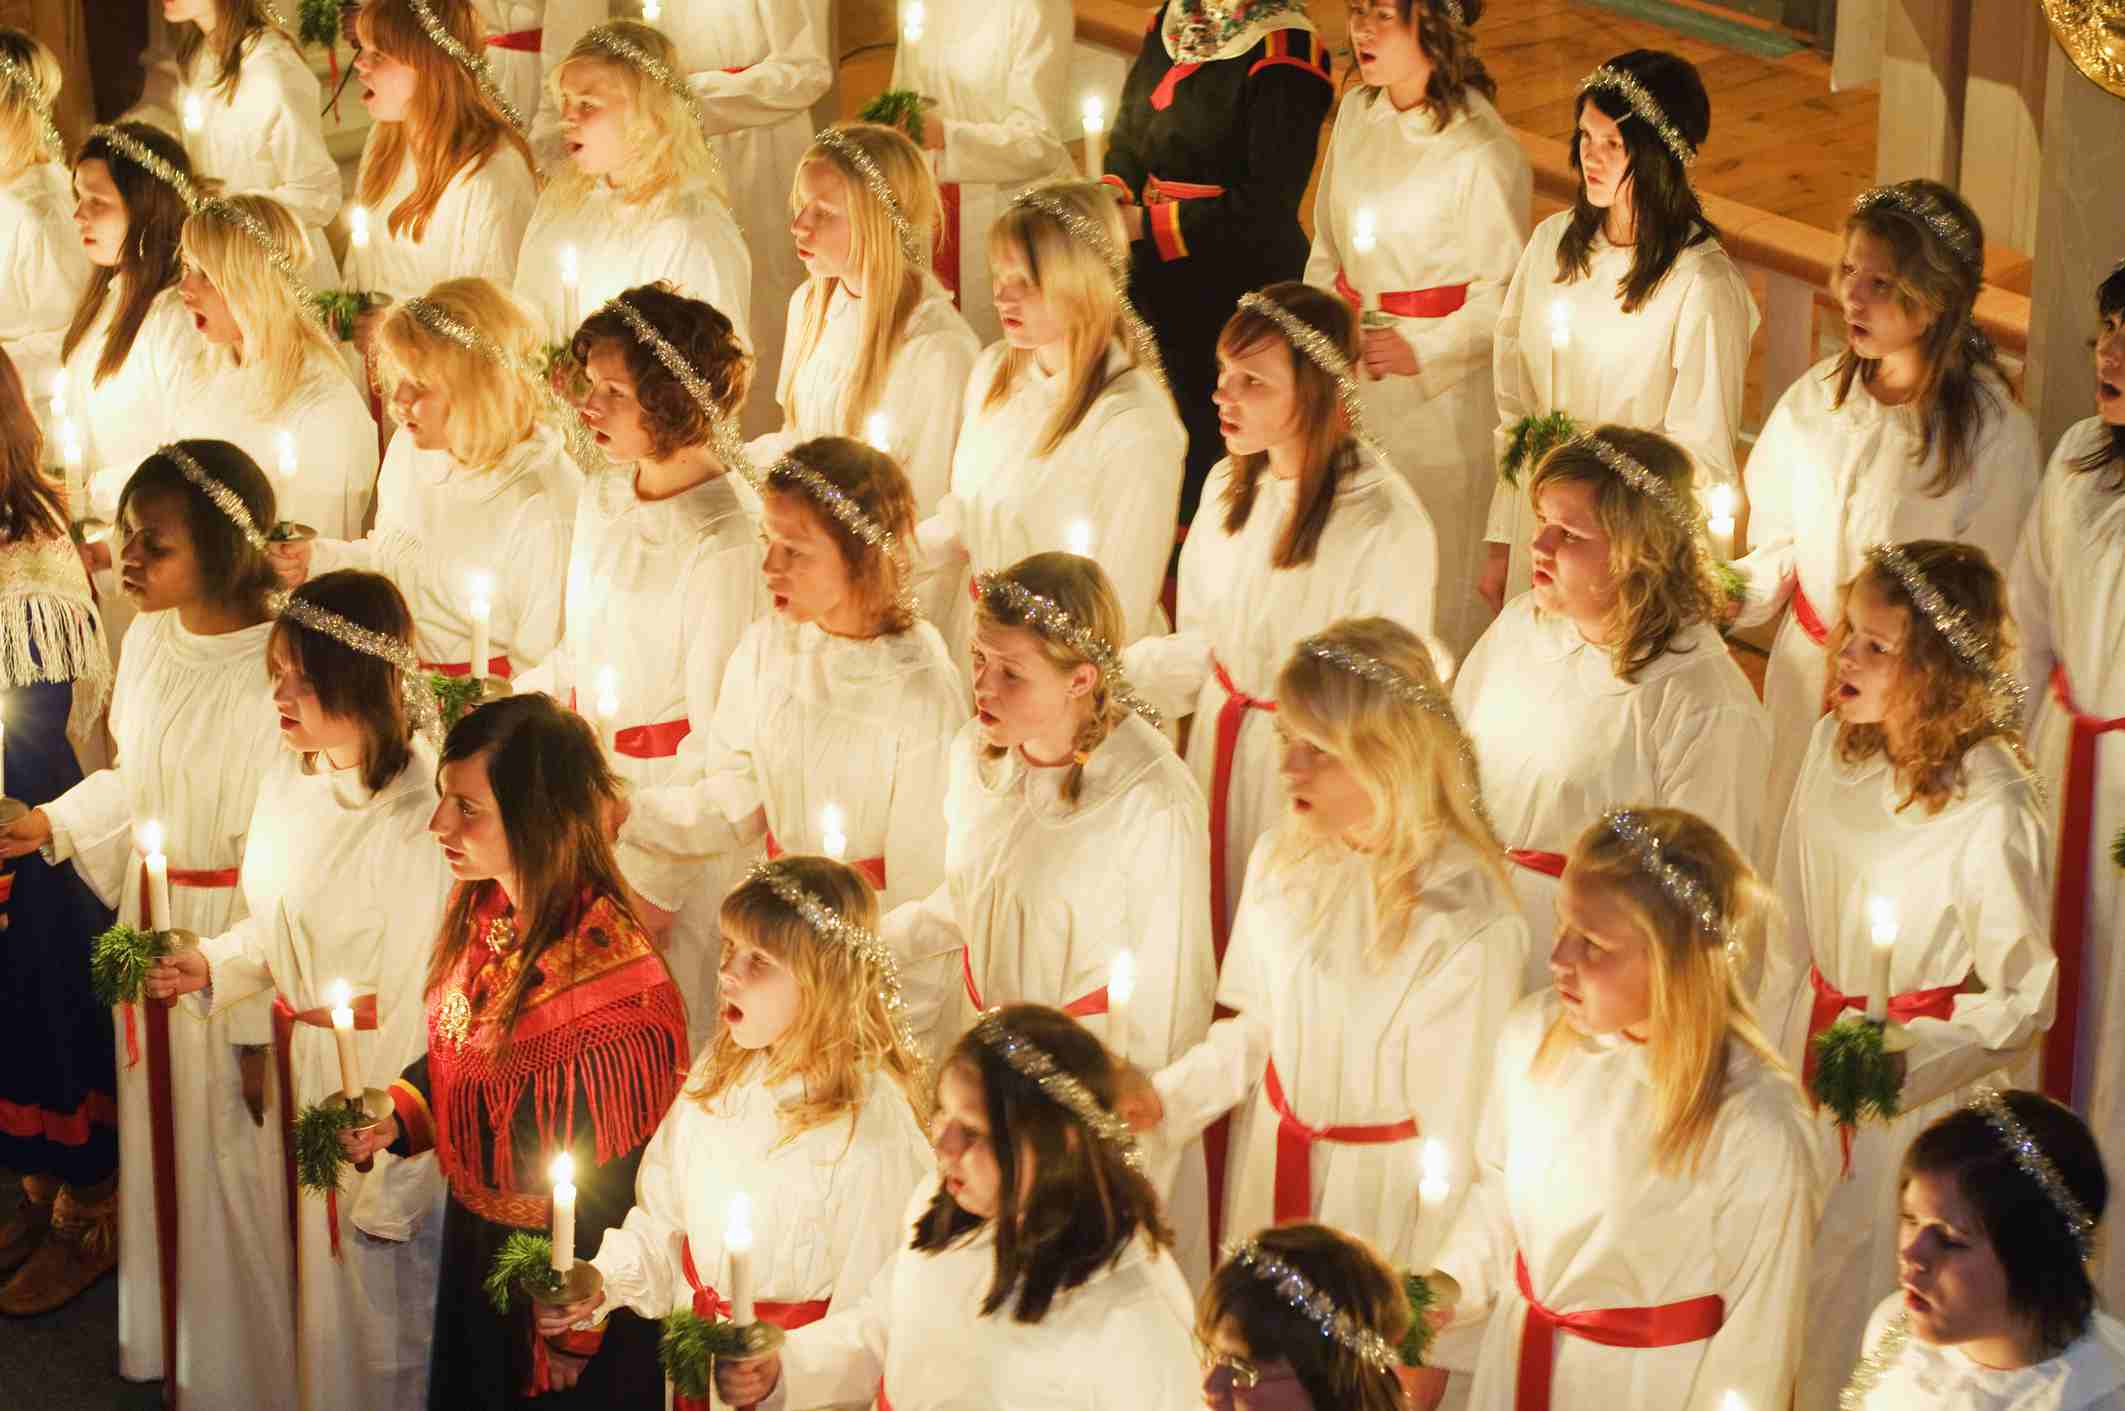 o come all ye faithful - Best Christian Christmas Songs